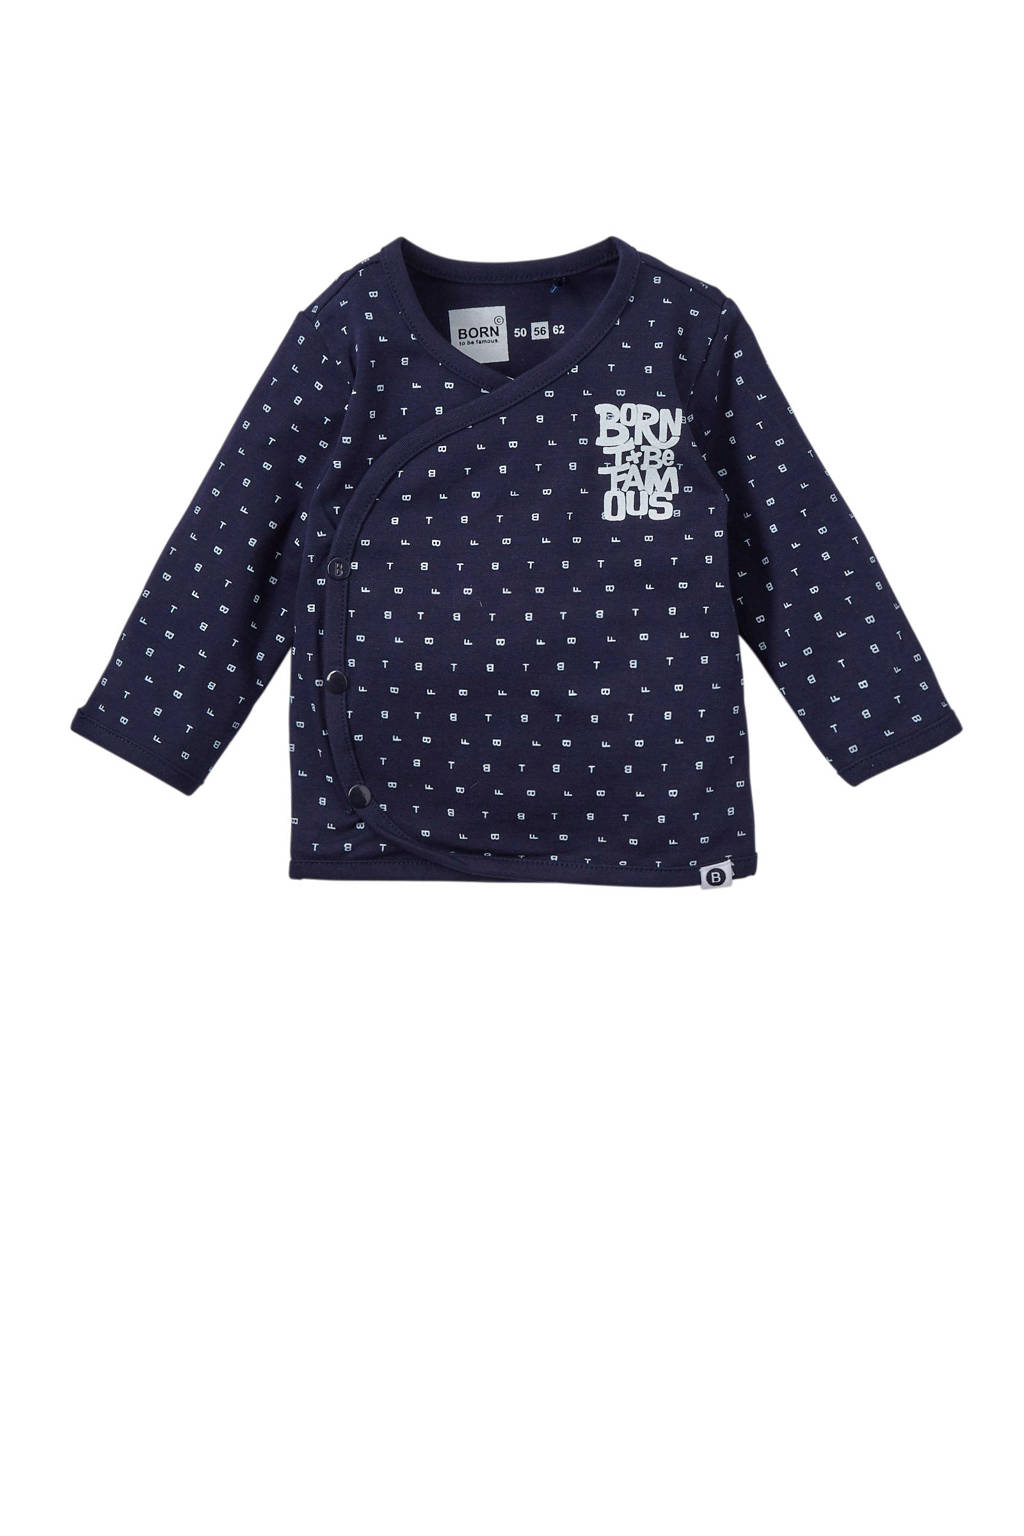 born to be famous. newborn baby longsleeve, Marine